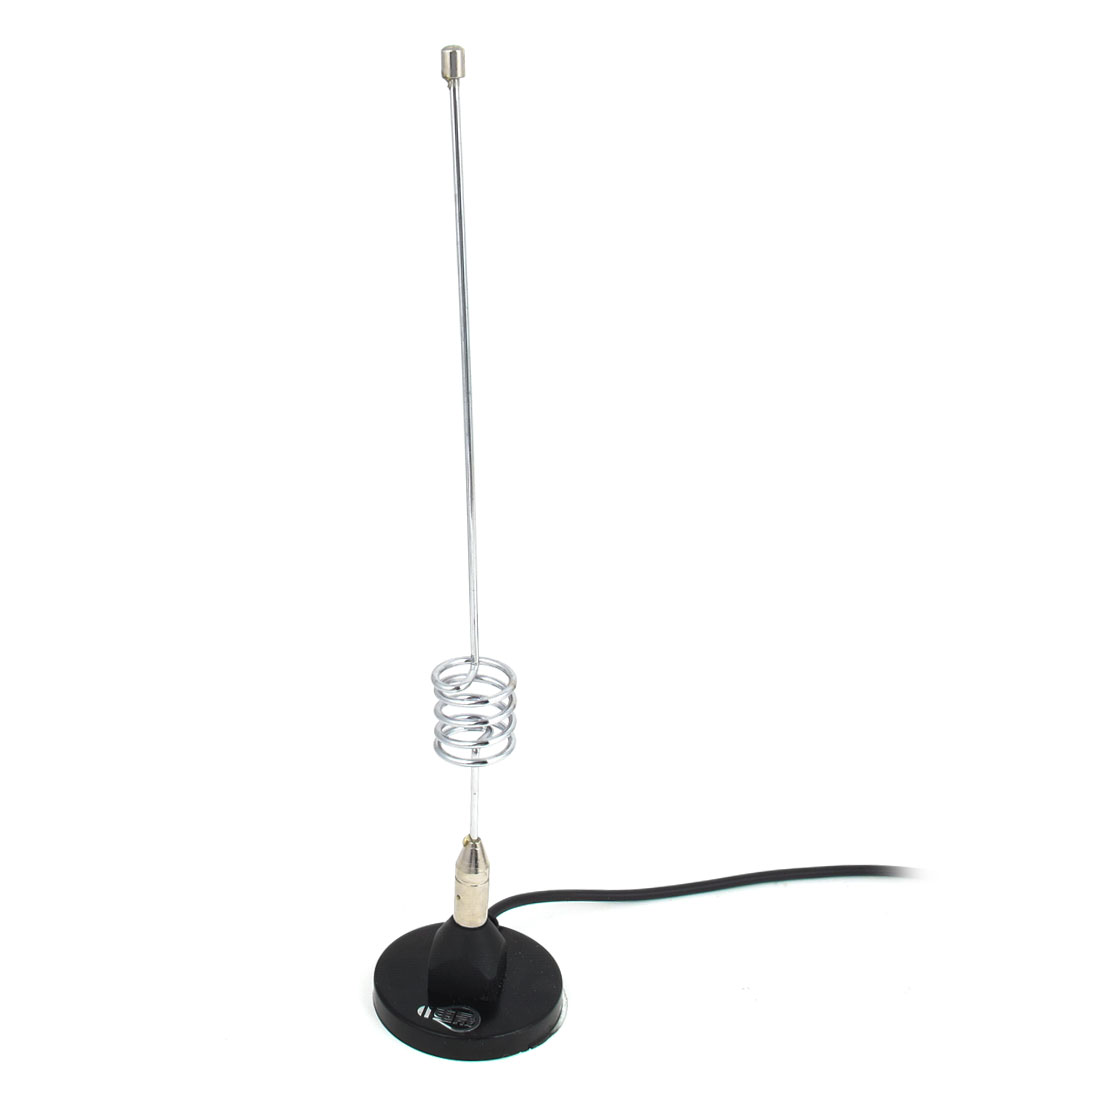 Metal Adjustable Double Pole Auto Car Radio FM AM Assist Antenna 30cm Long